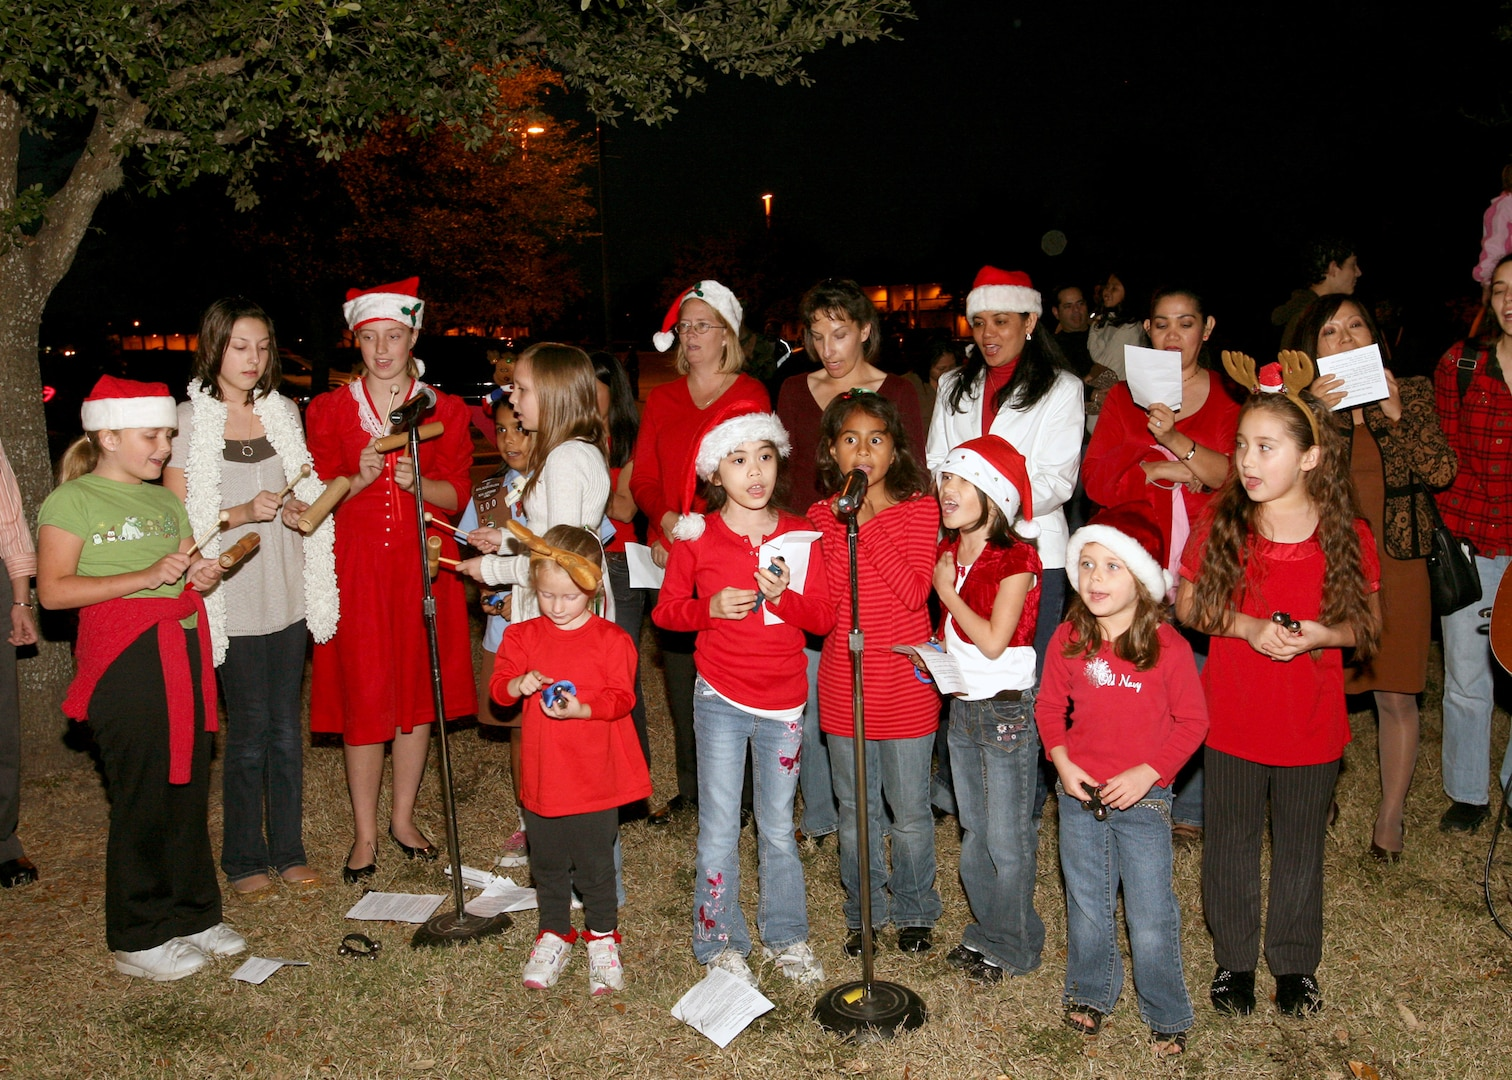 Members of the Chapel Children's Choir at Lackland Air Force Base, Texas, provide musical entertainment at the annual Christmas Tree Lighting on Nov. 29. (USAF photo by Robbin Cresswell)